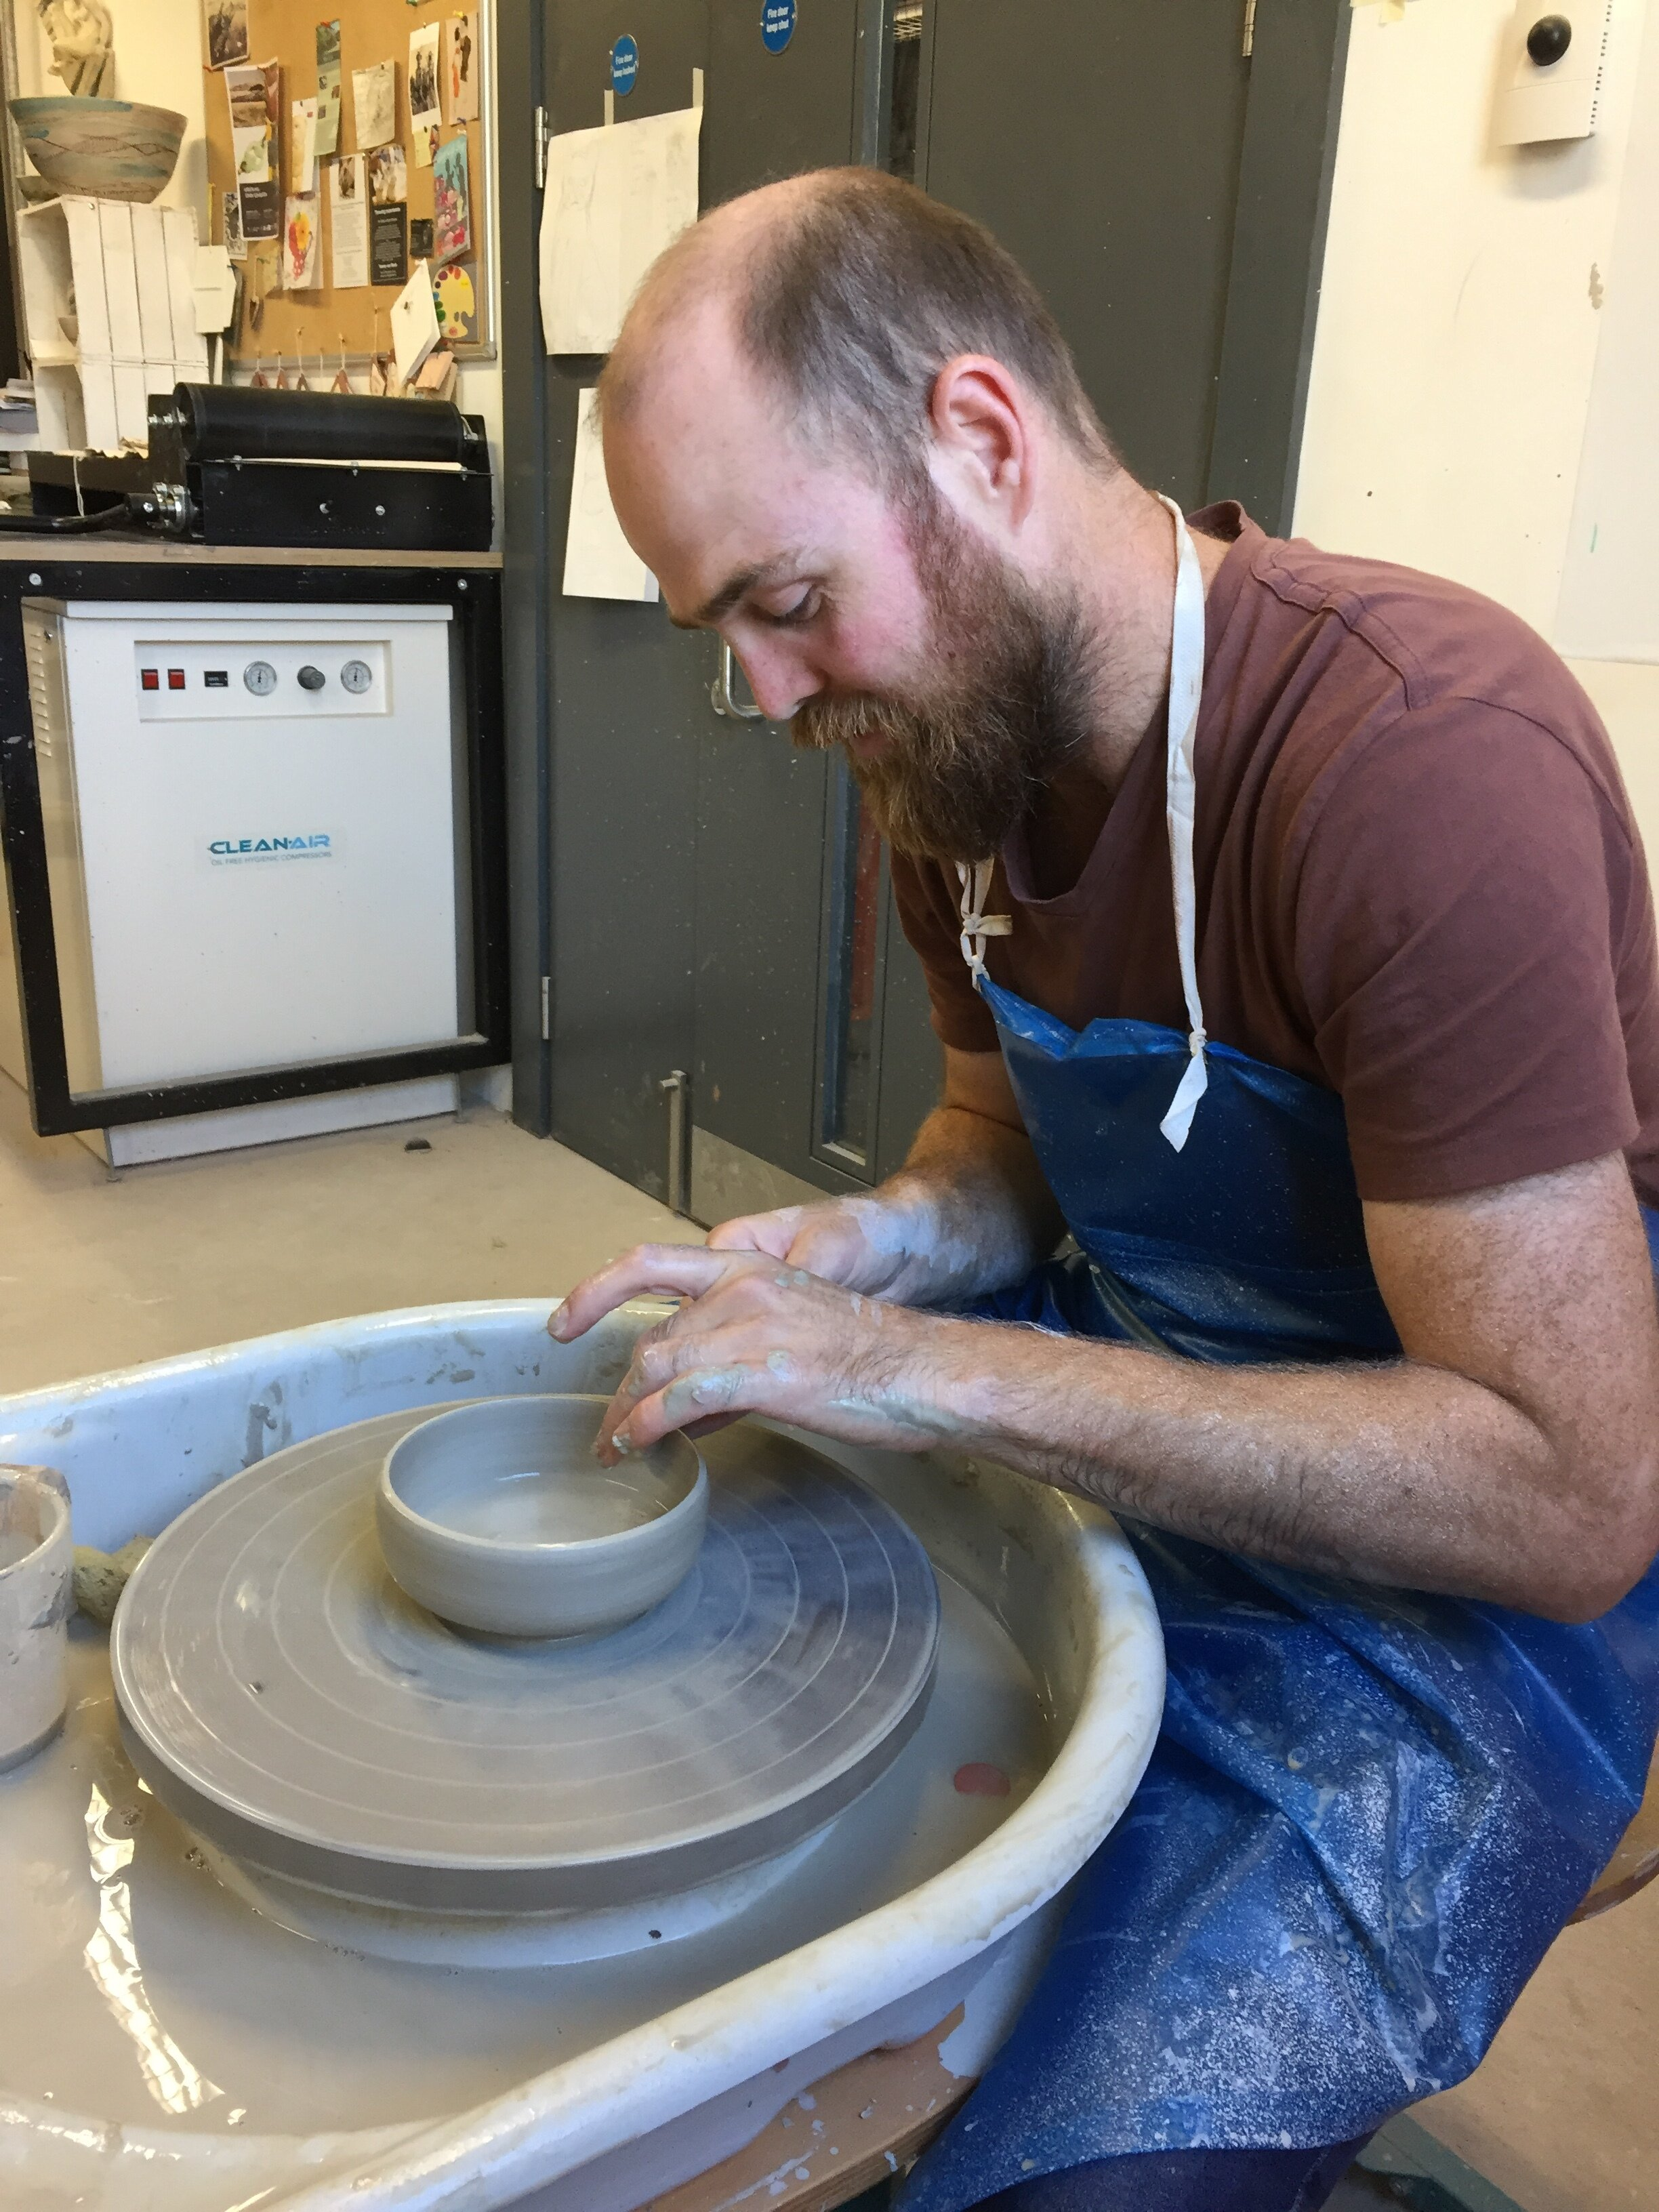 Throwing Experiences - 2 hours for 2 people total £50https://www.tweenyatthepottery.com/throwing-experiences